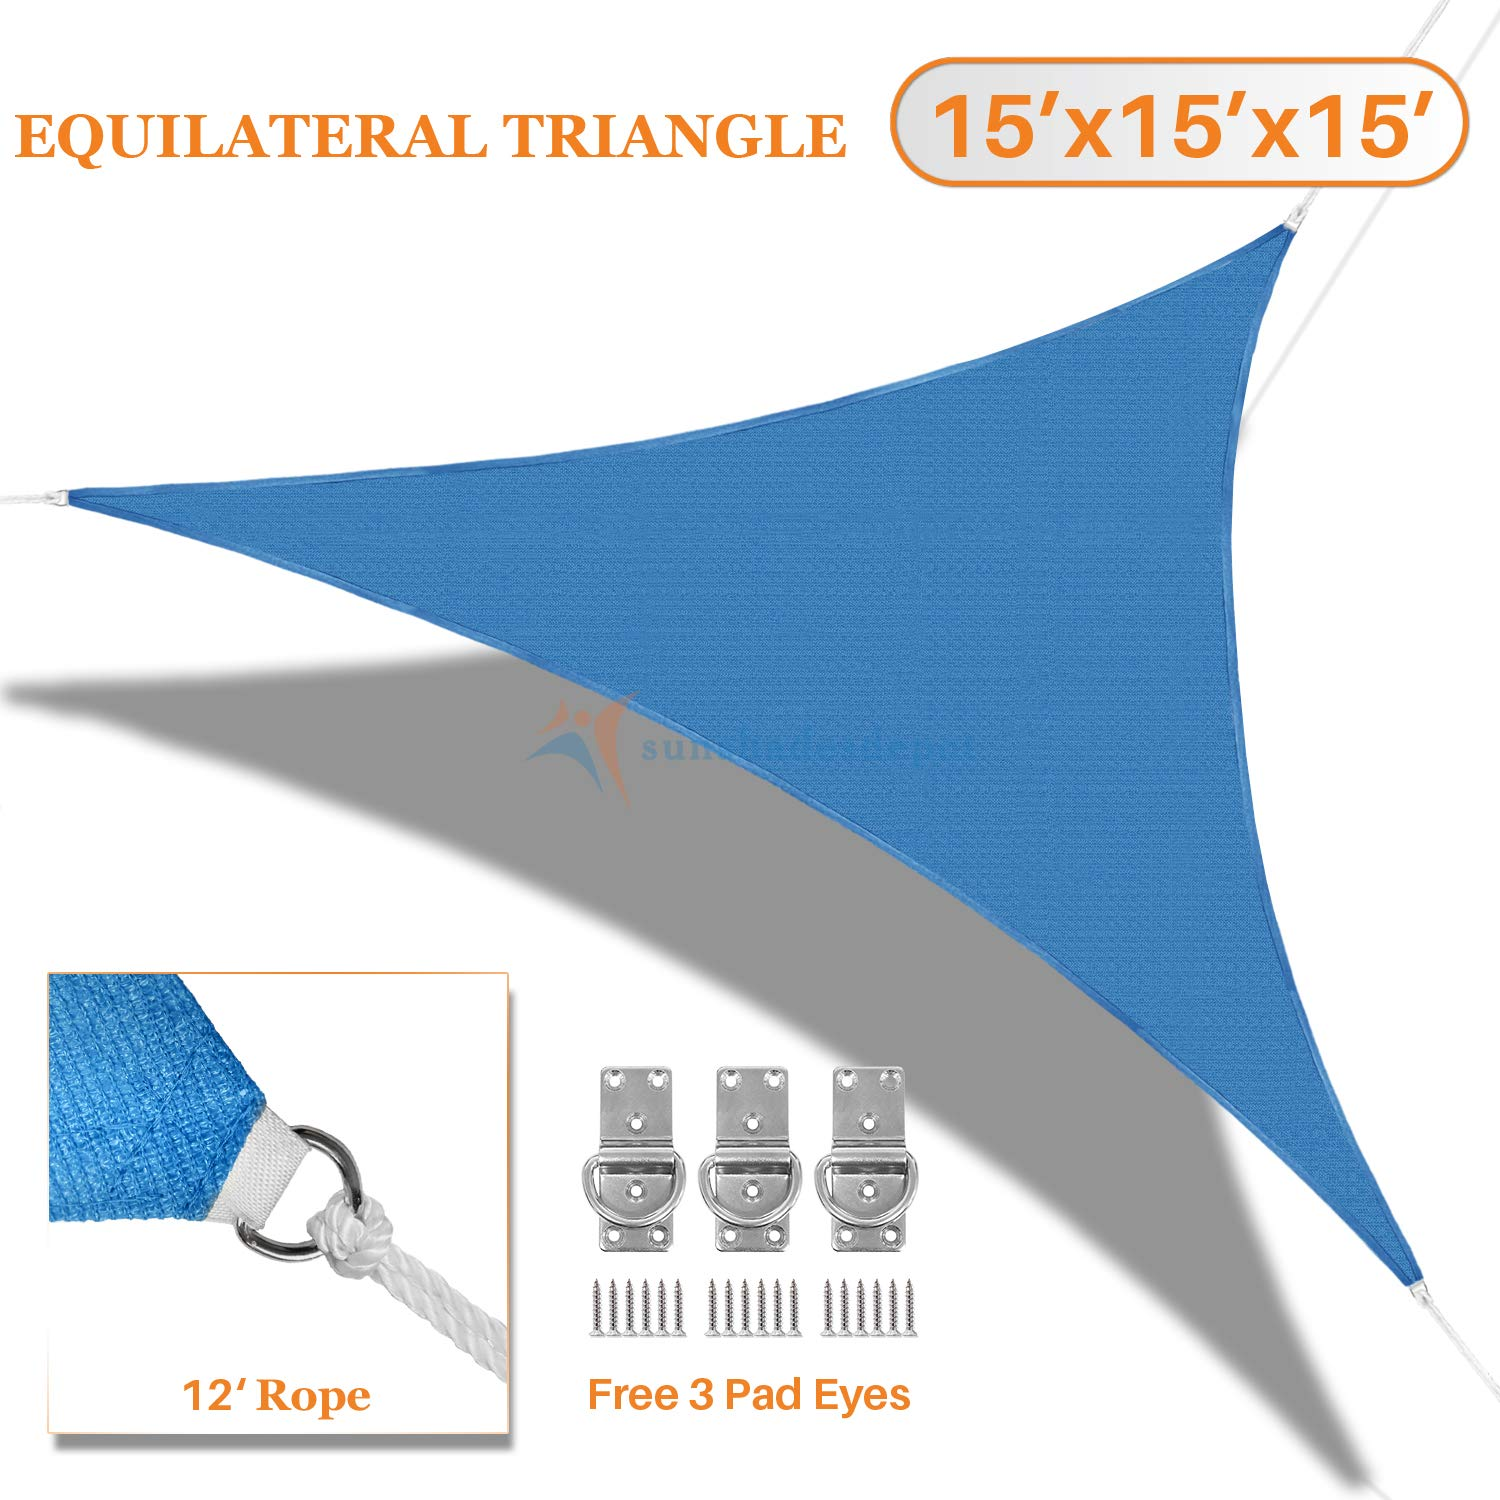 Sunshades Depot 15' x 15' x 15' Sun Shade Sail 180 GSM Equilateral Triangle Permeable Canopy Blue Custom Commercial Standard